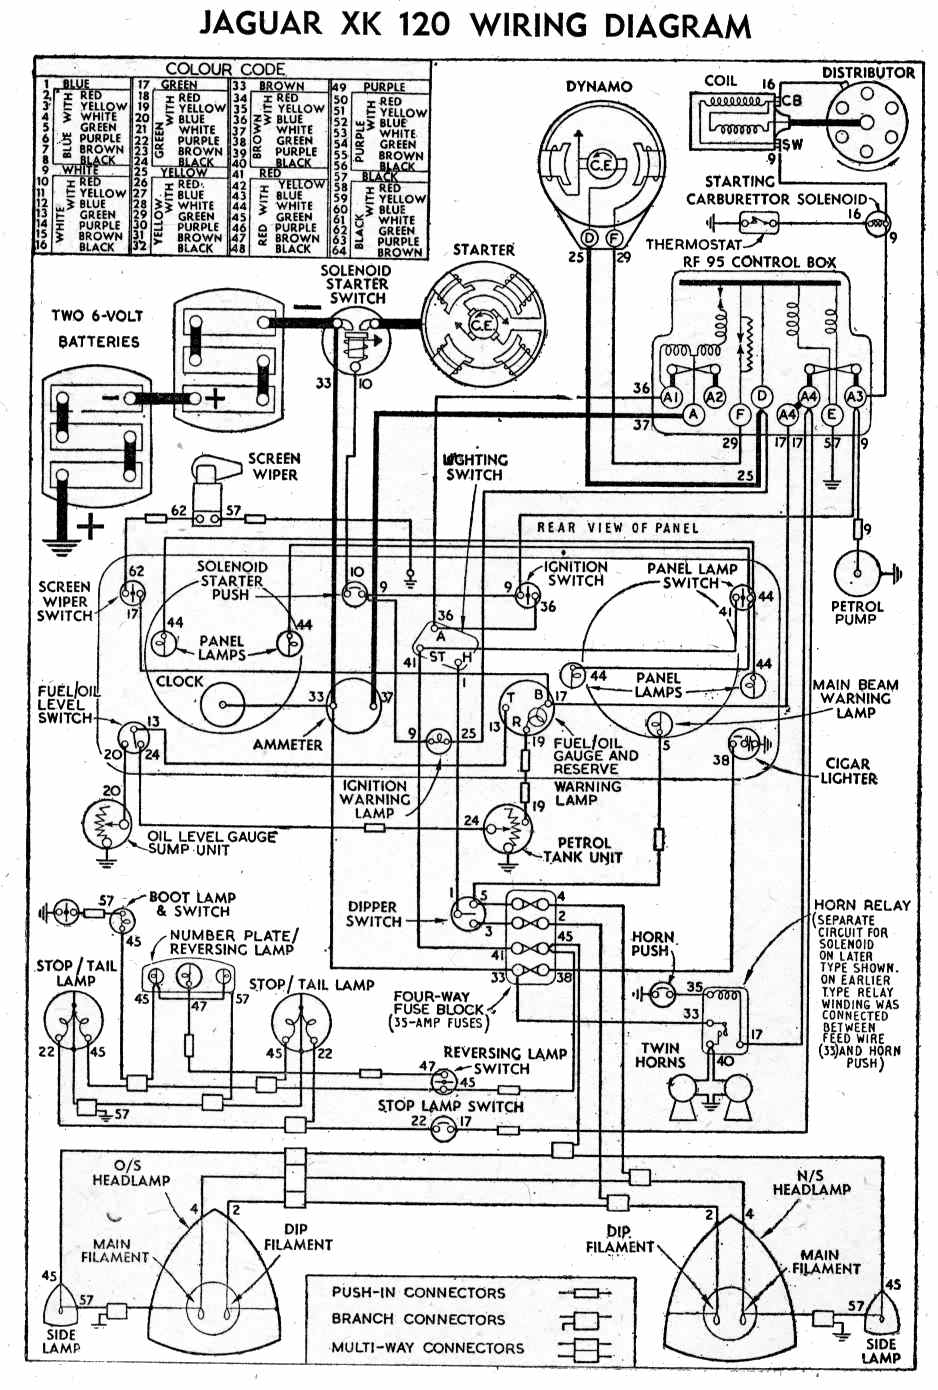 1968 Jaguar Xke Wiring Diagram Schematic Boyer Electronic Ignition Wiring Diagrams Tomosa35 Jeep Wrangler Waystar Fr